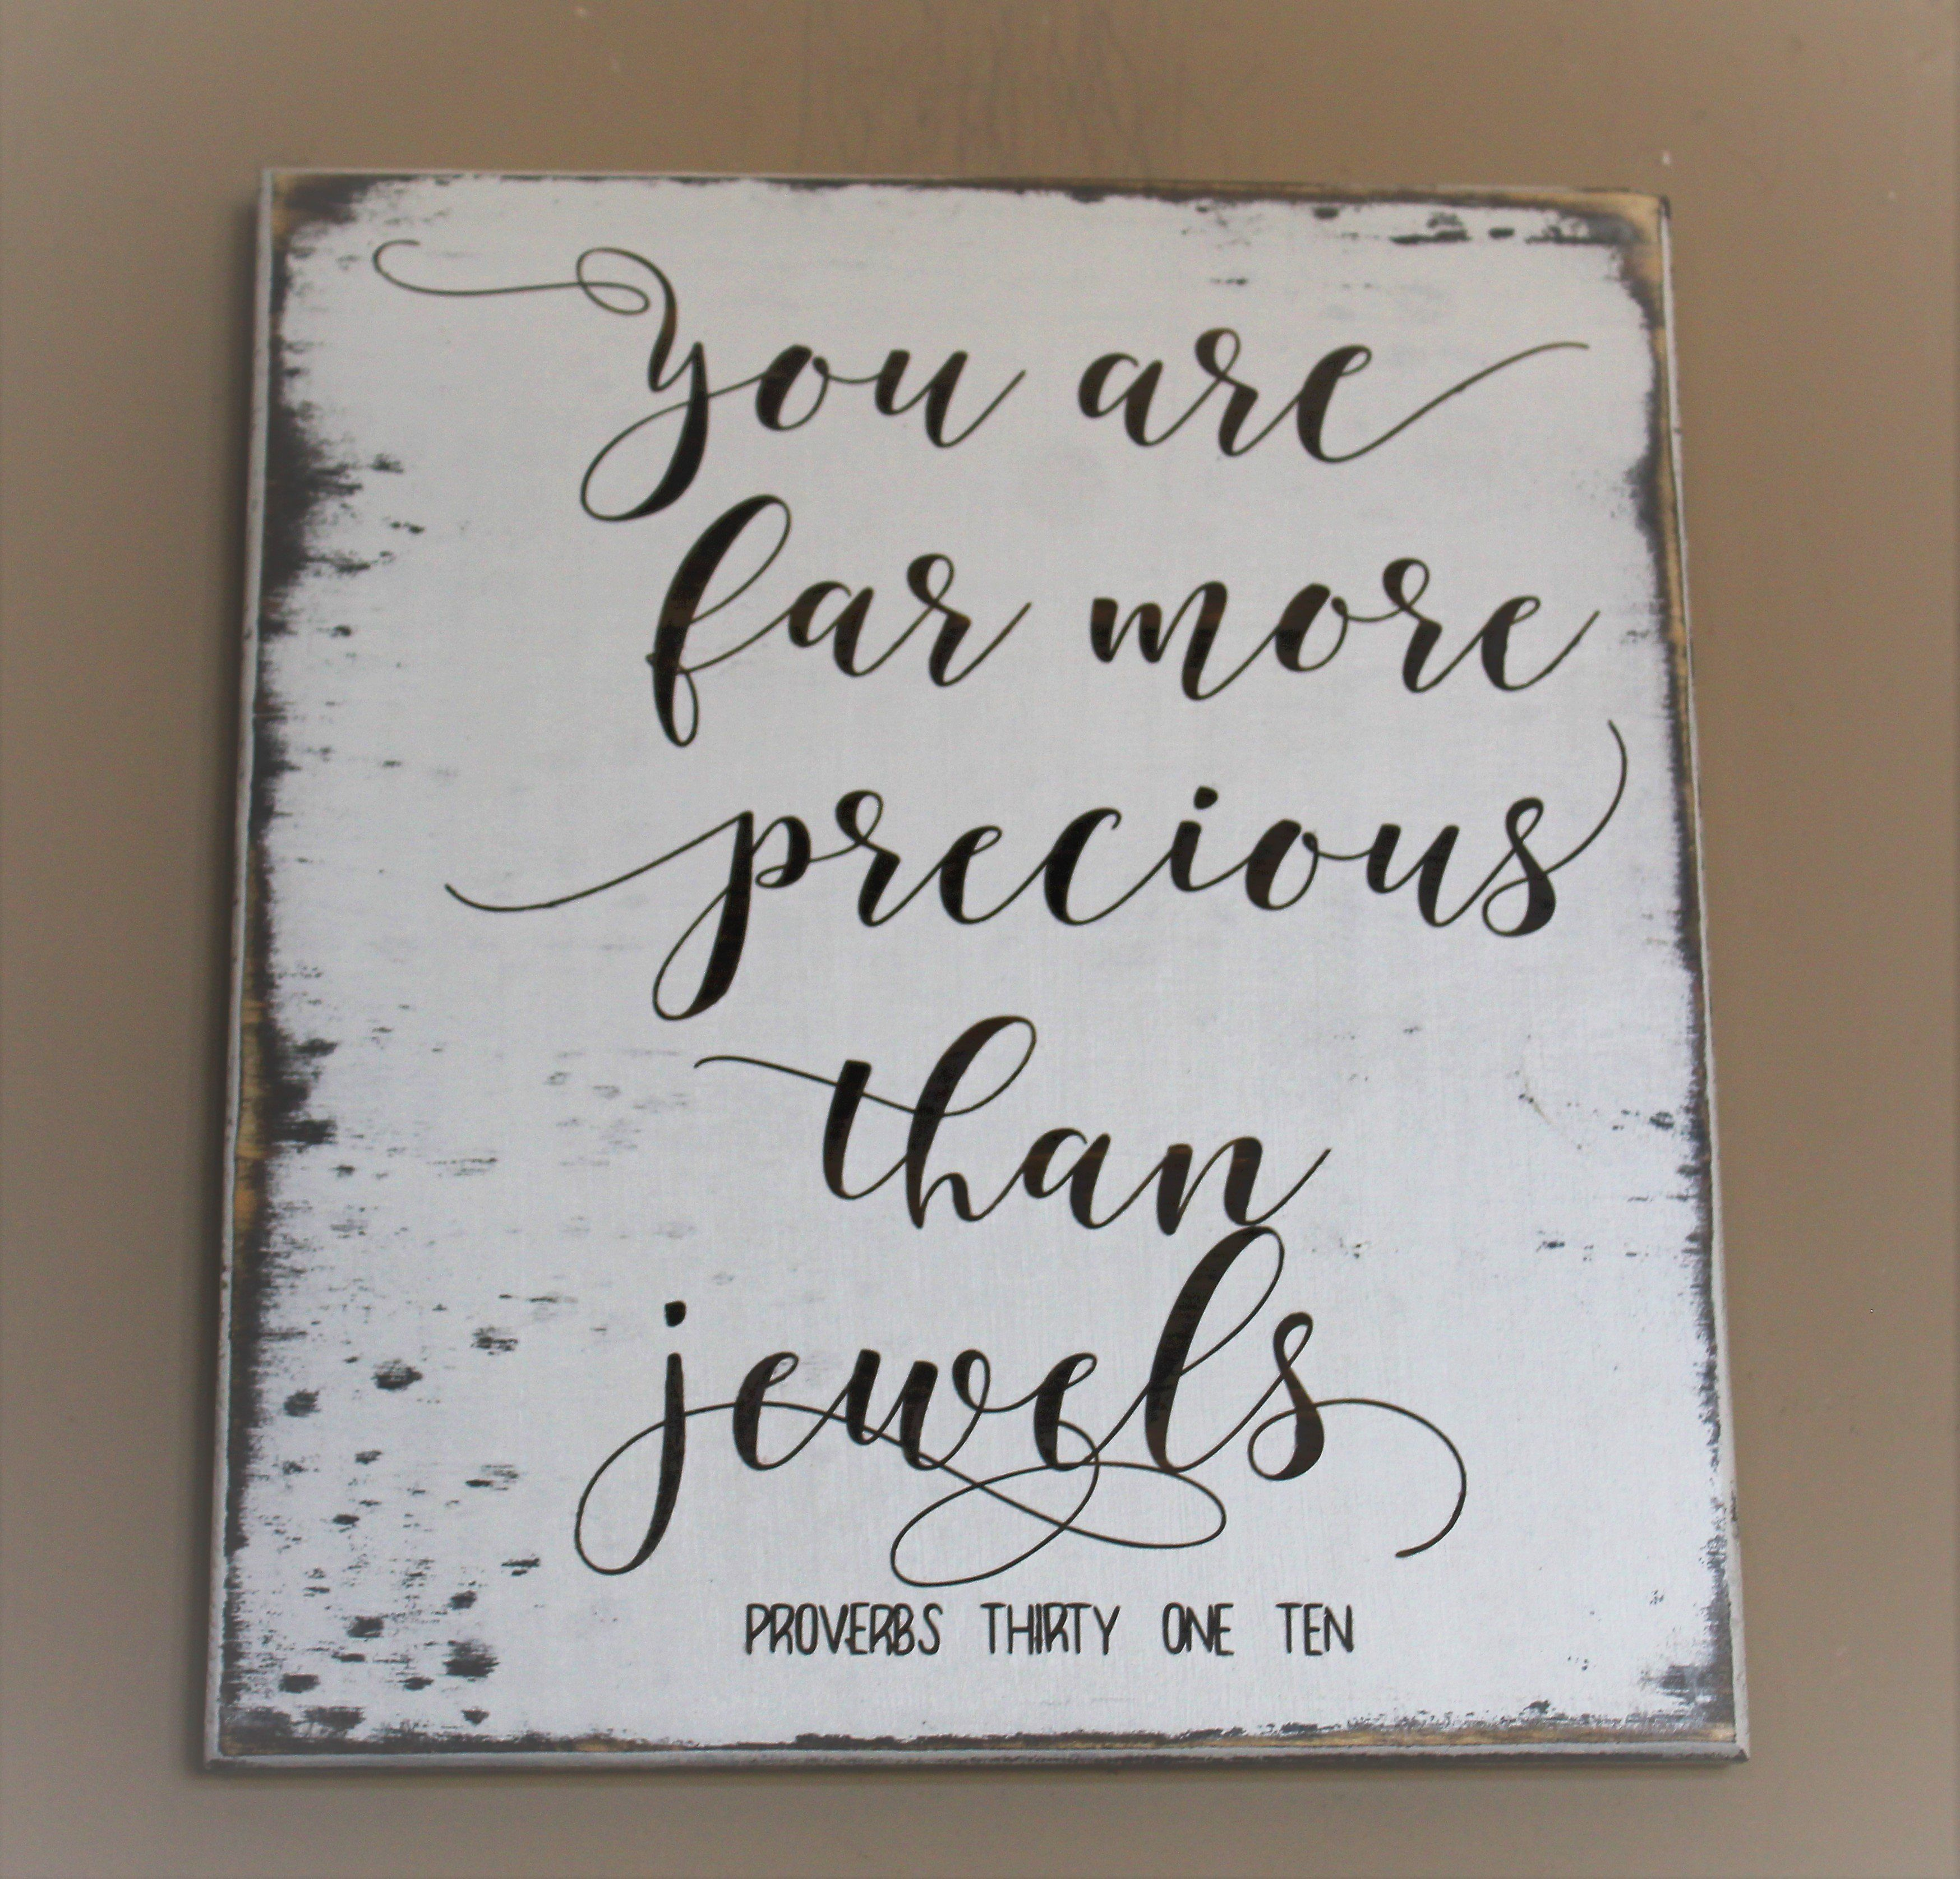 She is far more precious than jewels Wood sign | Inspiration